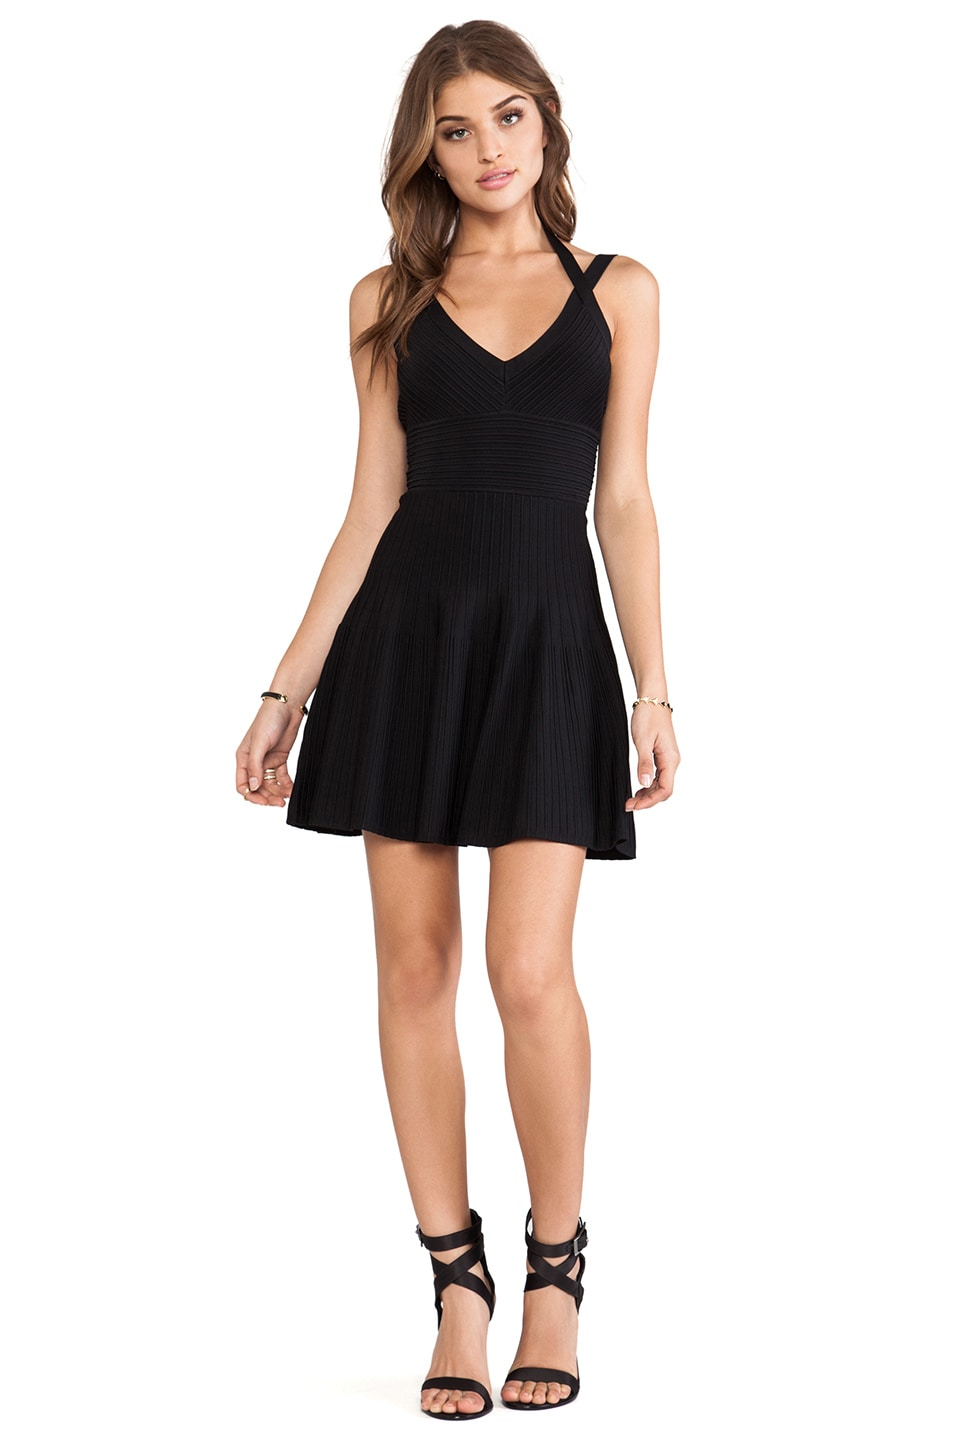 BCBGMAXAZRIA Elizabeth Dress in Black